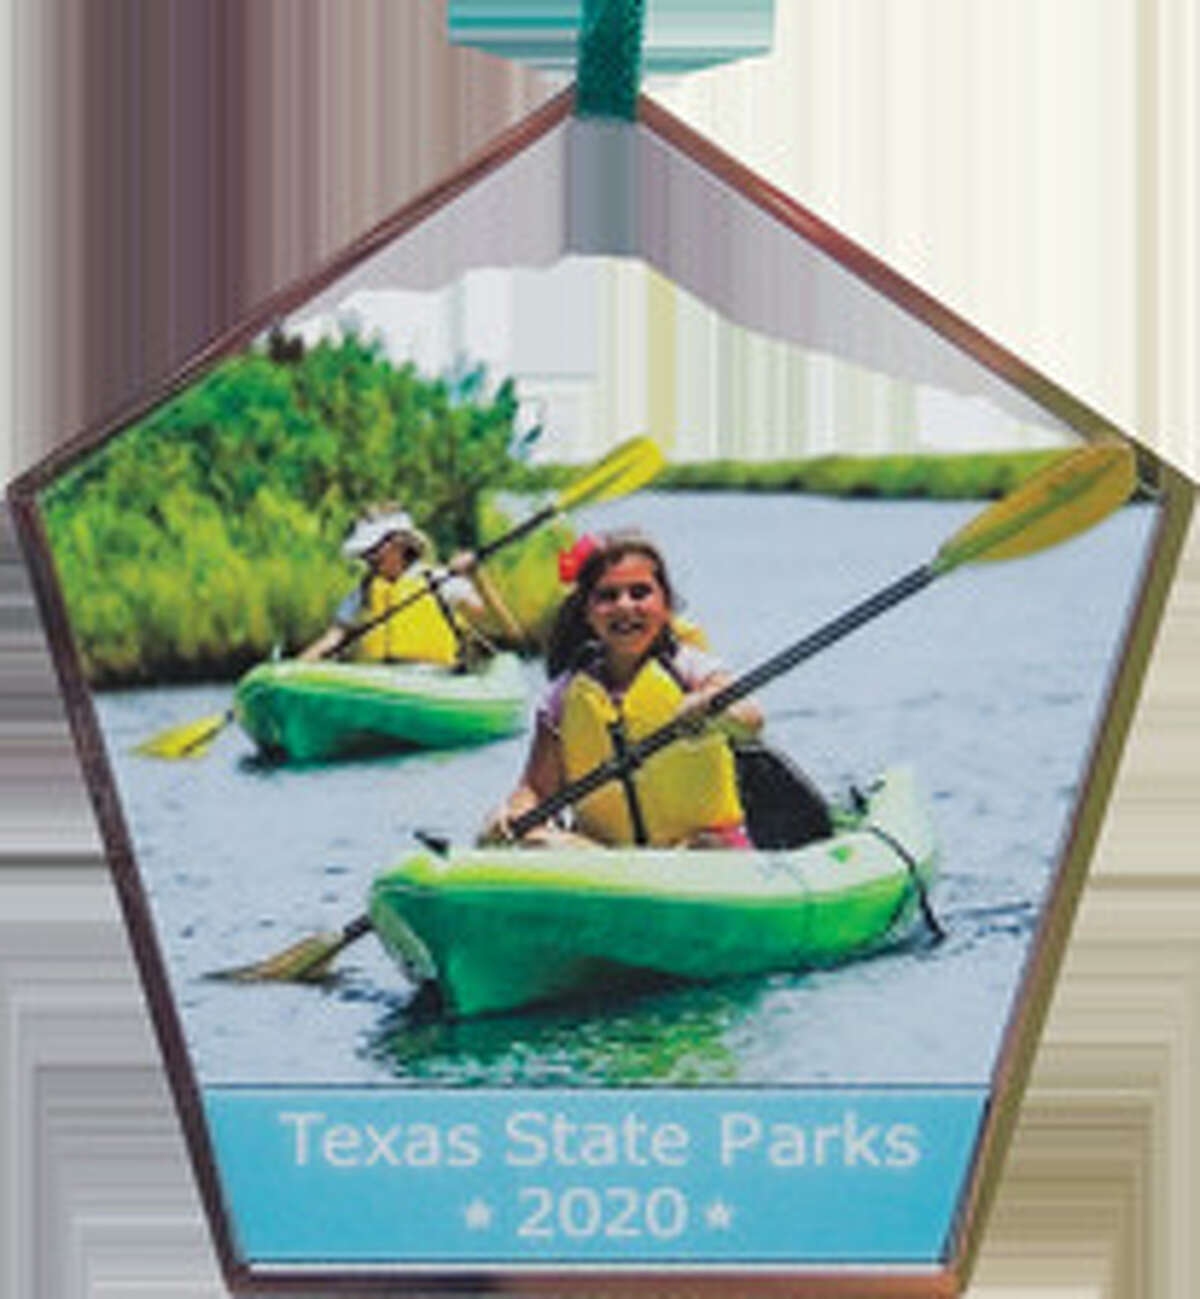 This year's Texas State Parks Christmas ornament features kayaking at Sea Rim State Park. Courtesy, Texas Parks & Wildlife Department.